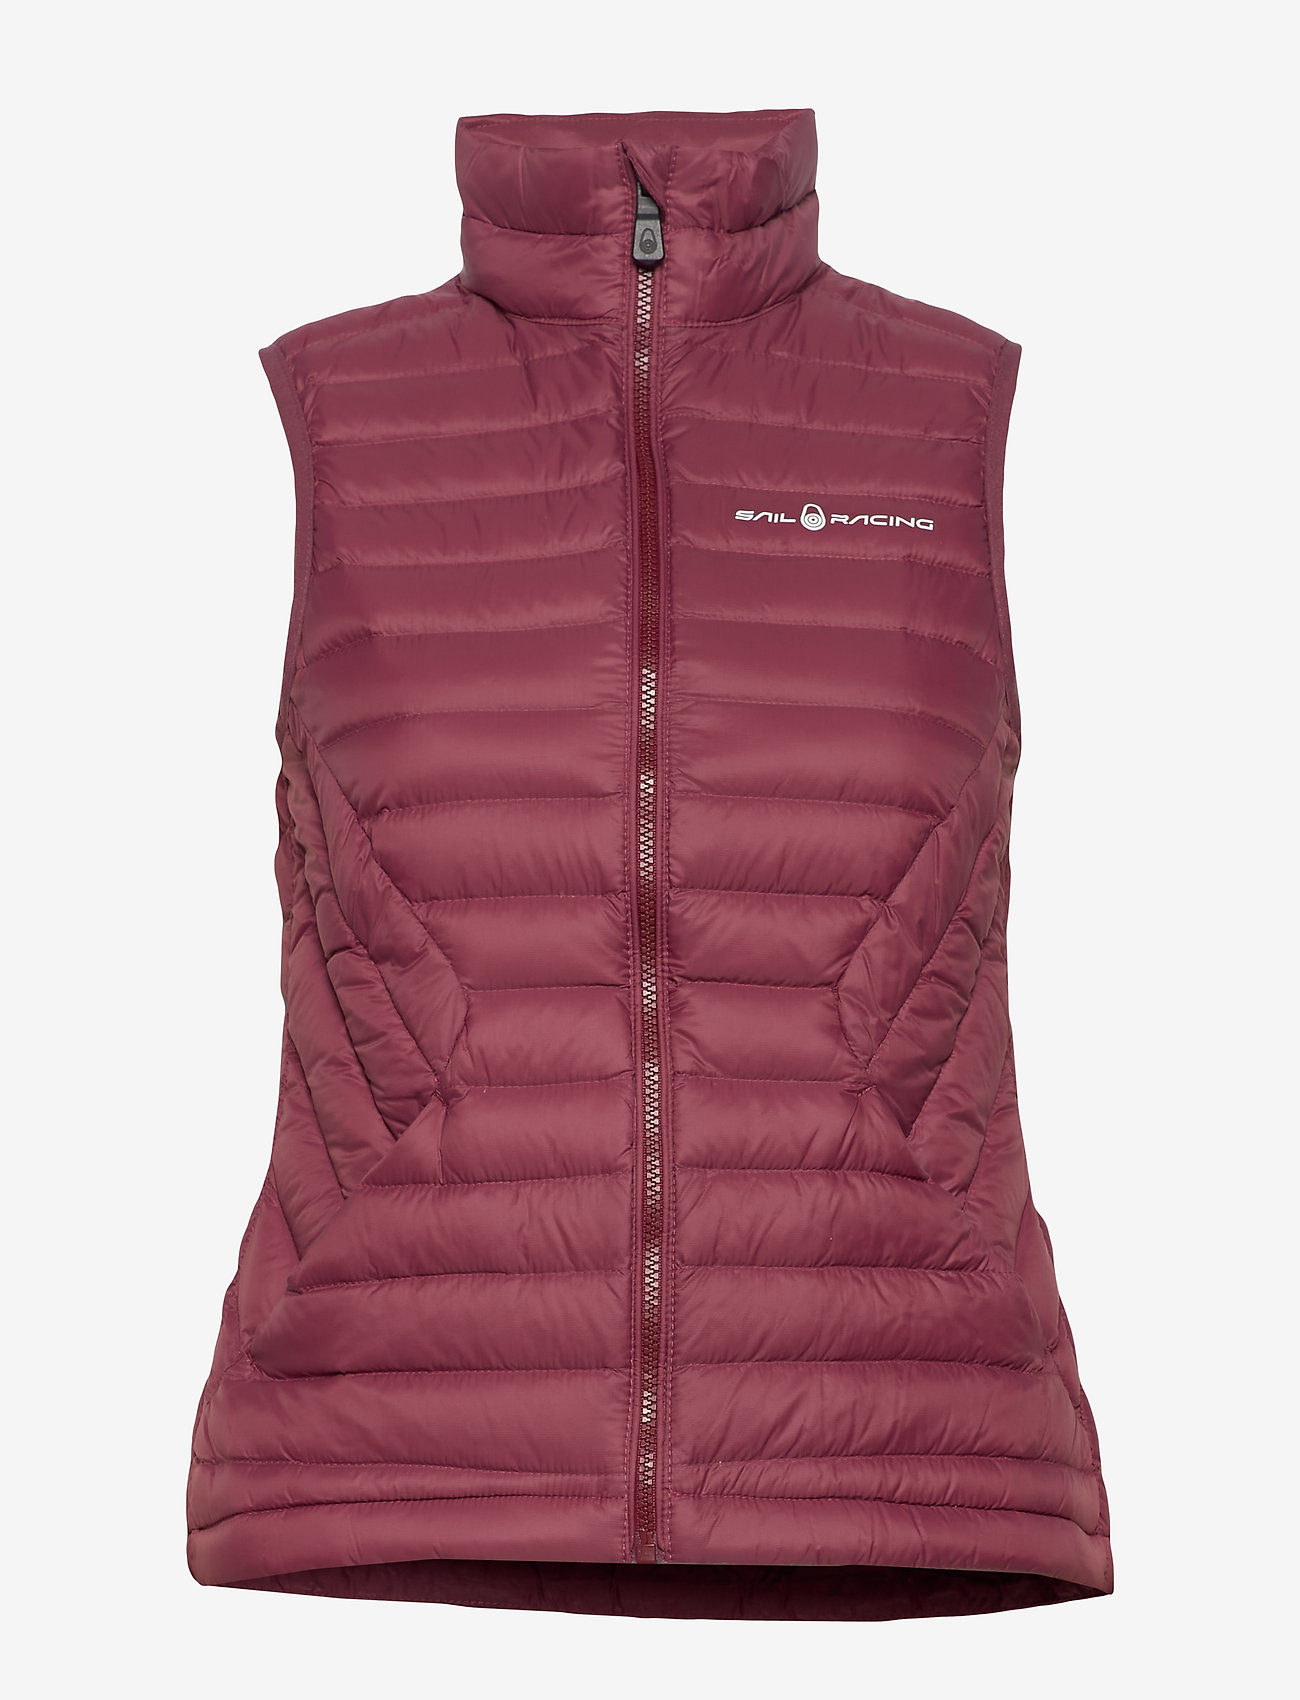 Sail Racing - W LINK DOWN VEST - puffer vests - maroon - 1